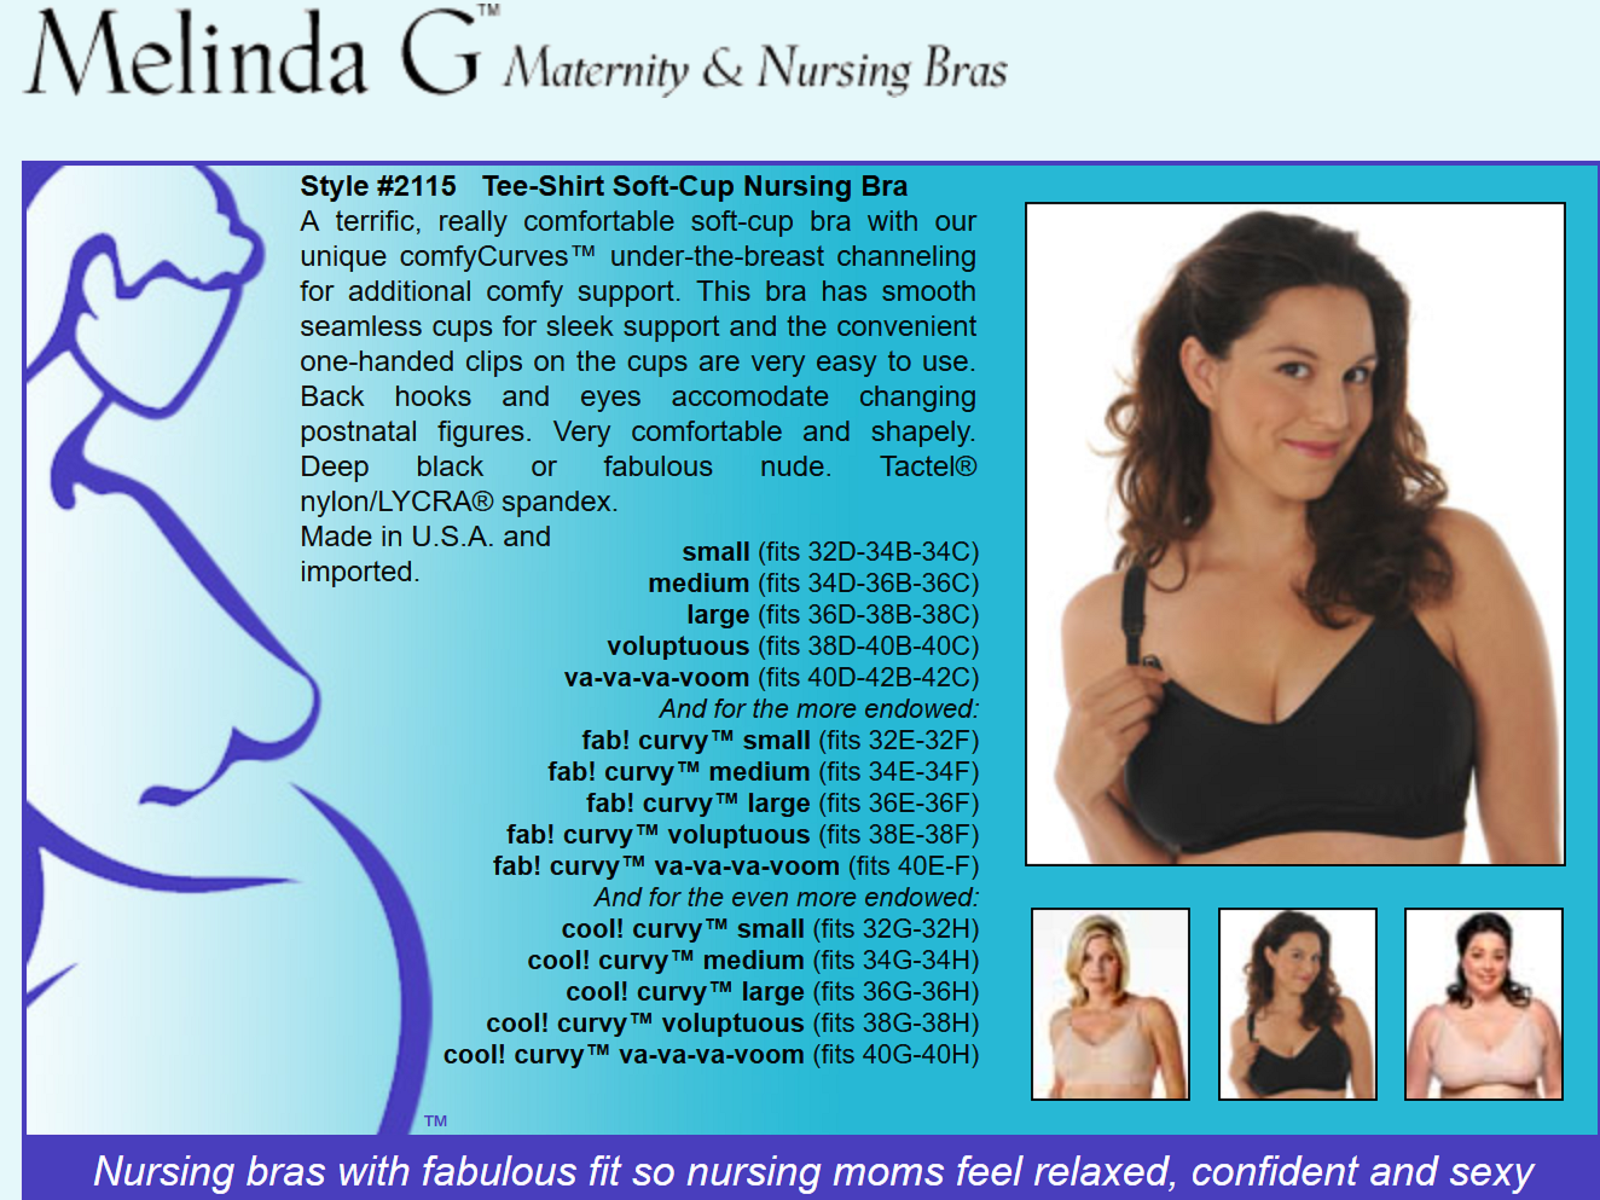 91827cde44d Melinda G Tee-Shirt Soft-Cup Nursing Bra 2115 Black Cool Curvy Voluptous 2  2 of 2 See More